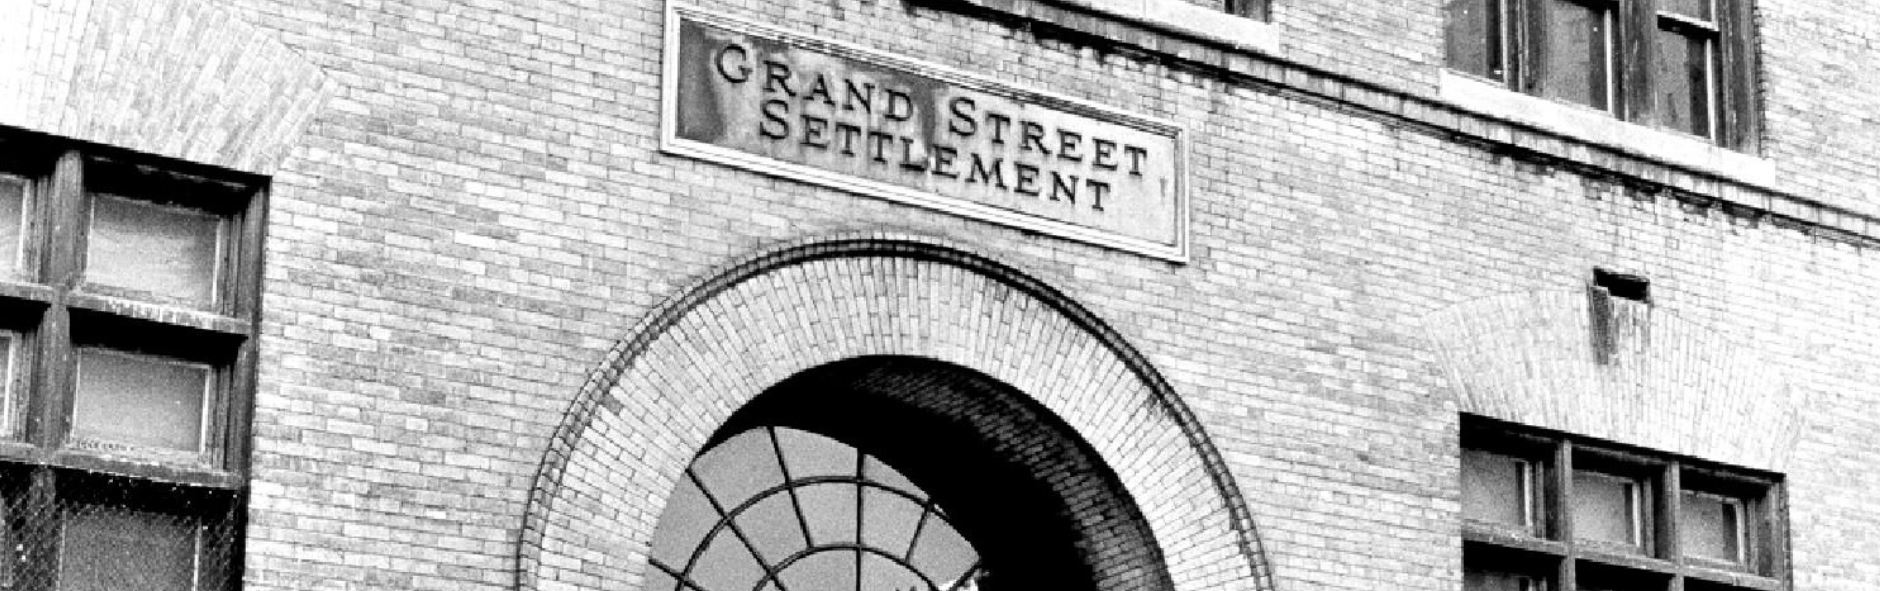 Old Grand Street Building